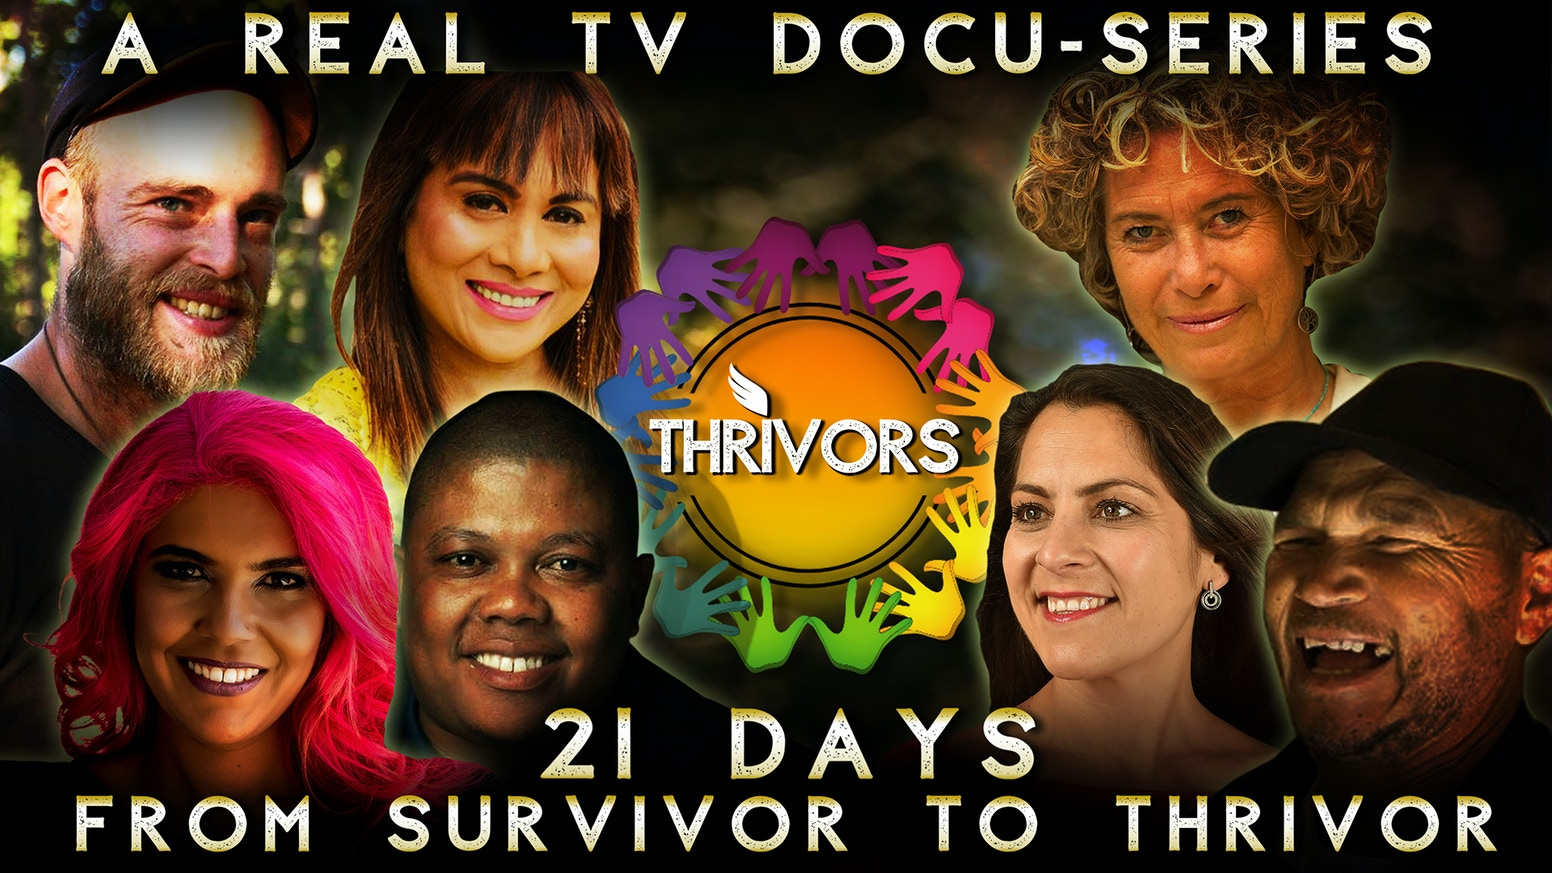 High-concept, awe-inspiring reality tv docu-series to uplift, inspire and enthuse hope en mass. Coming end 2020 to a screen near you! #thrivors